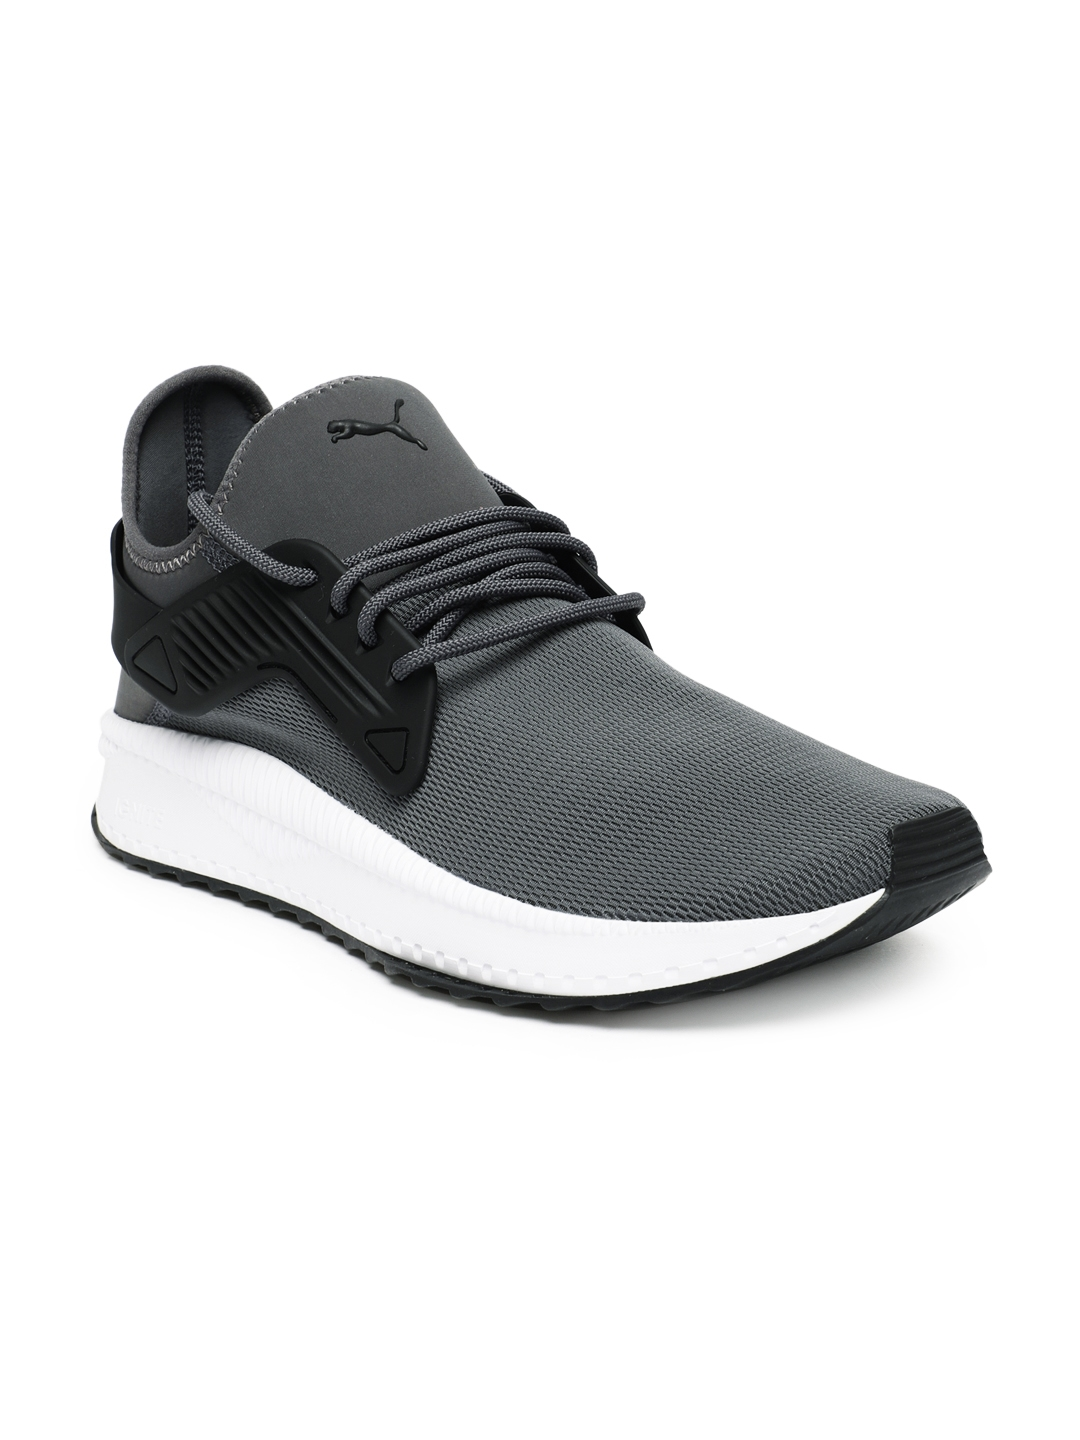 4bd4d43aac5 Buy Puma Men TSUGI Cage Grey Casual Shoes - Casual Shoes for Men ...